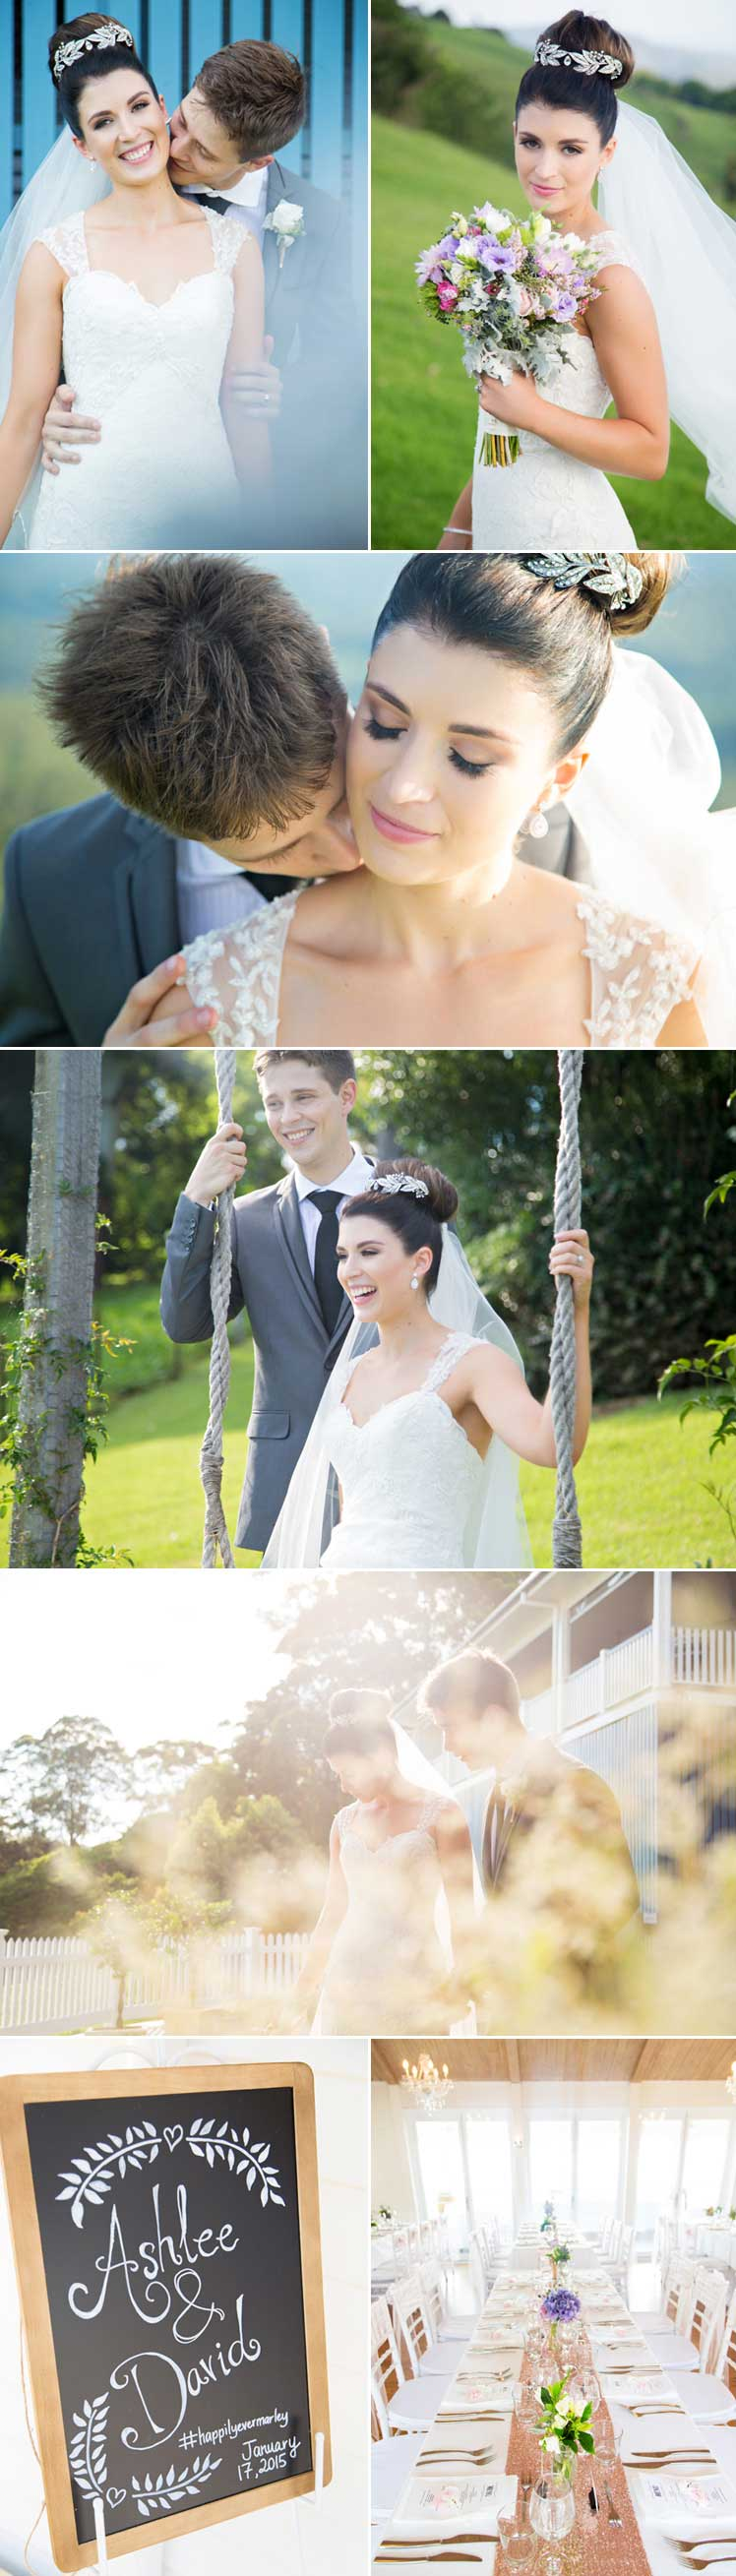 beautiful wedding images by Milque Photography